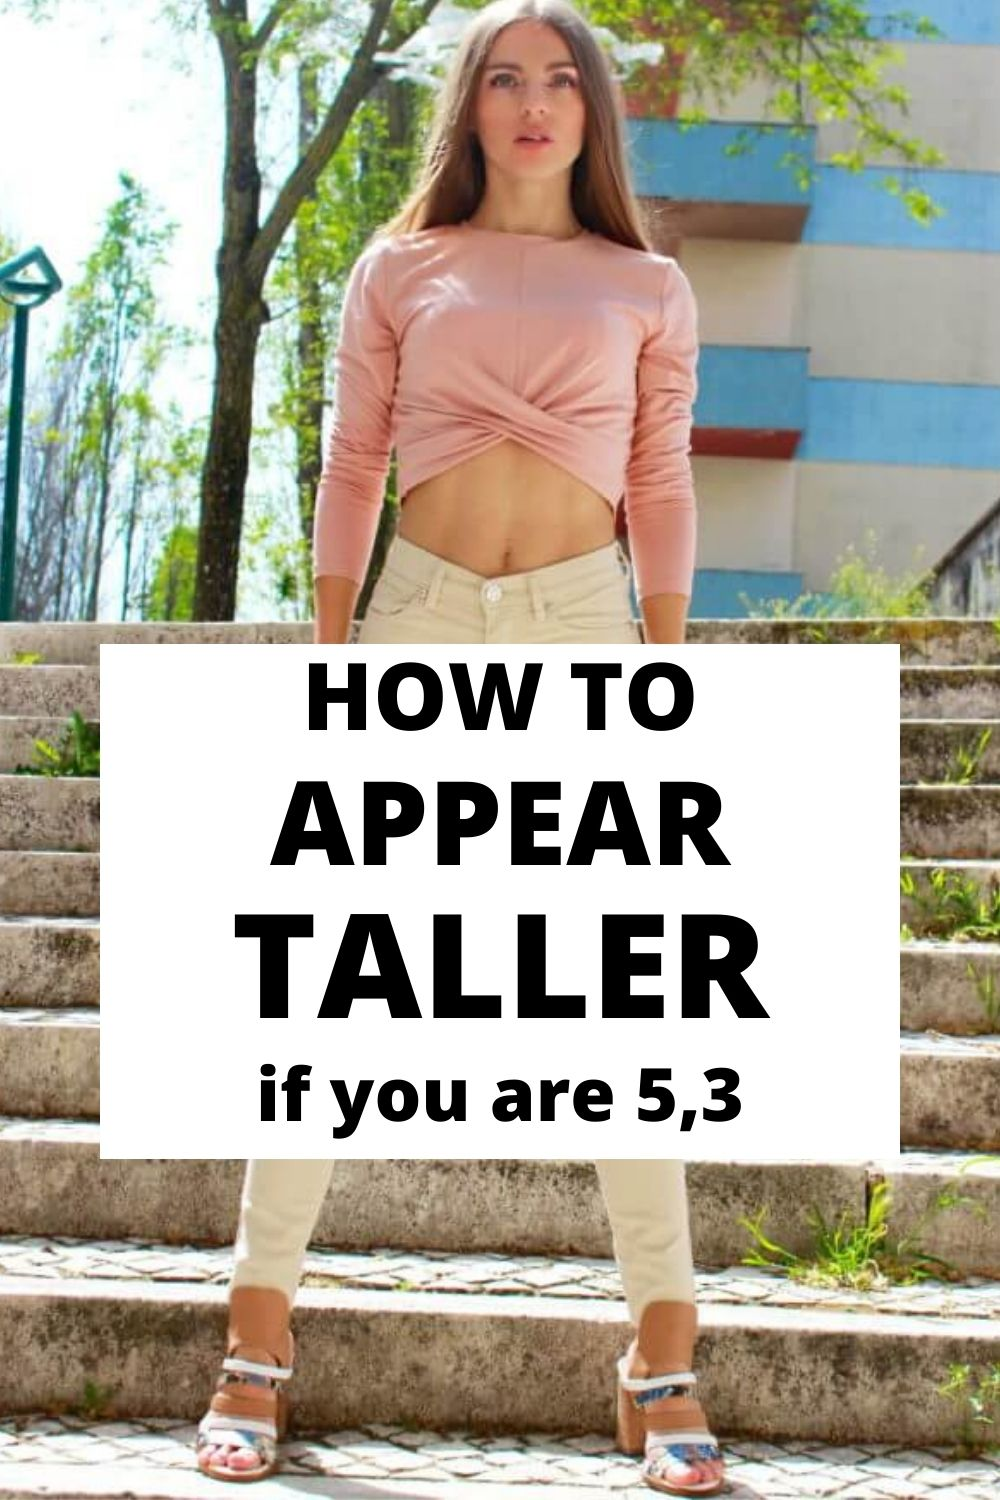 How to appear taller